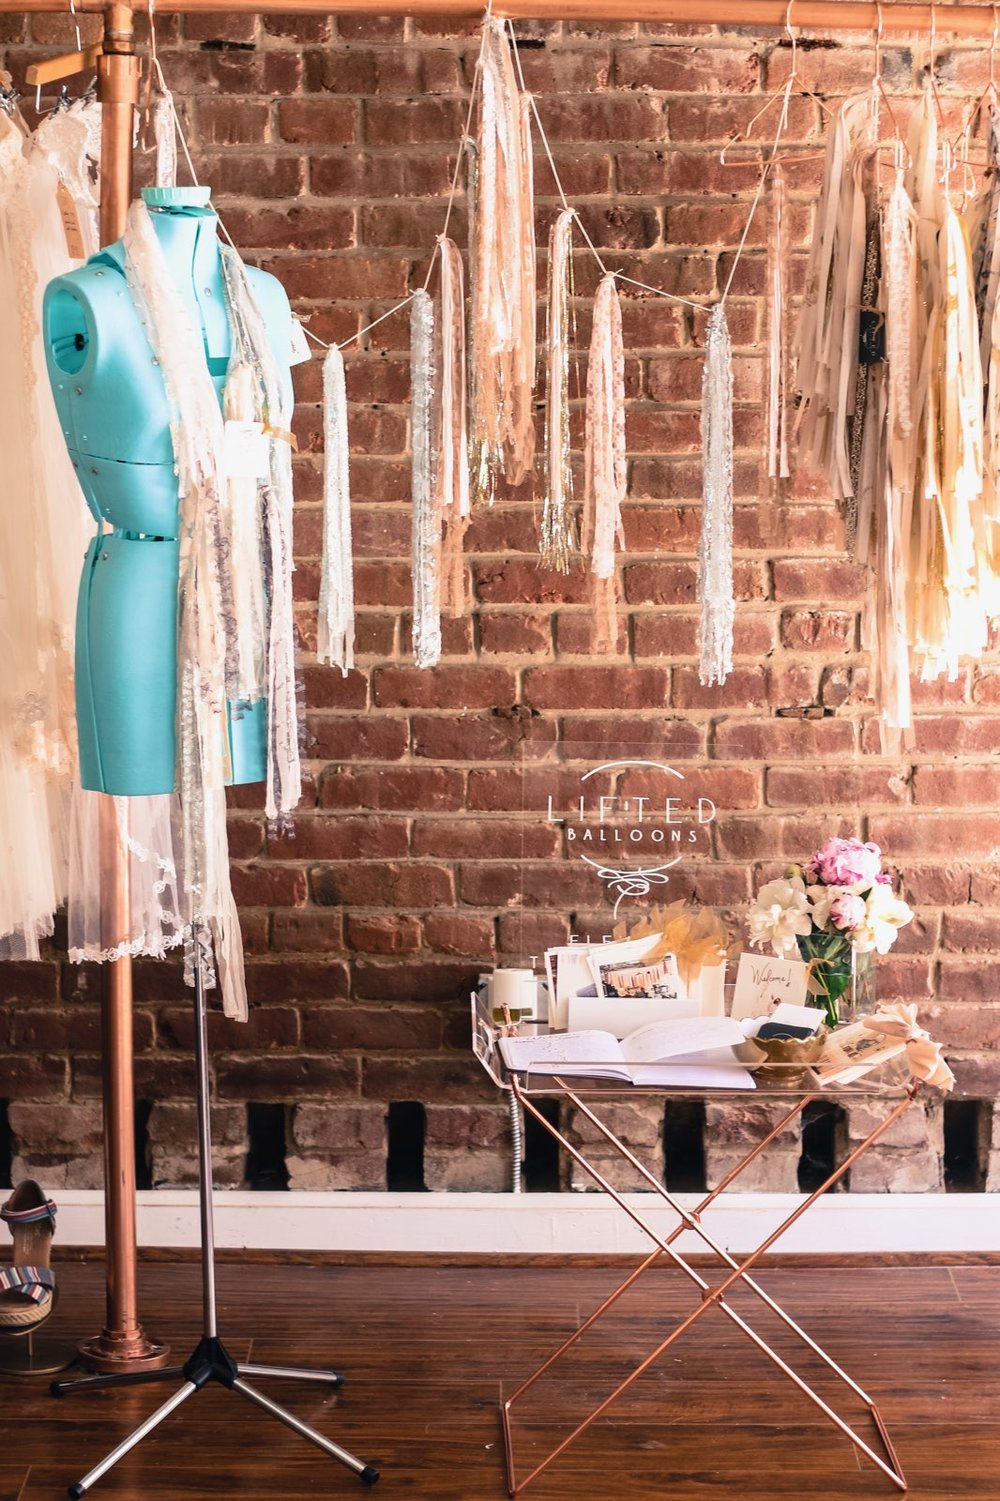 Betrothed Event, Couture Wedding Garland. This was my happy little spot to toast newly engaged brides looking for a one-of-a-kind wedding dress and garland to compliment it.